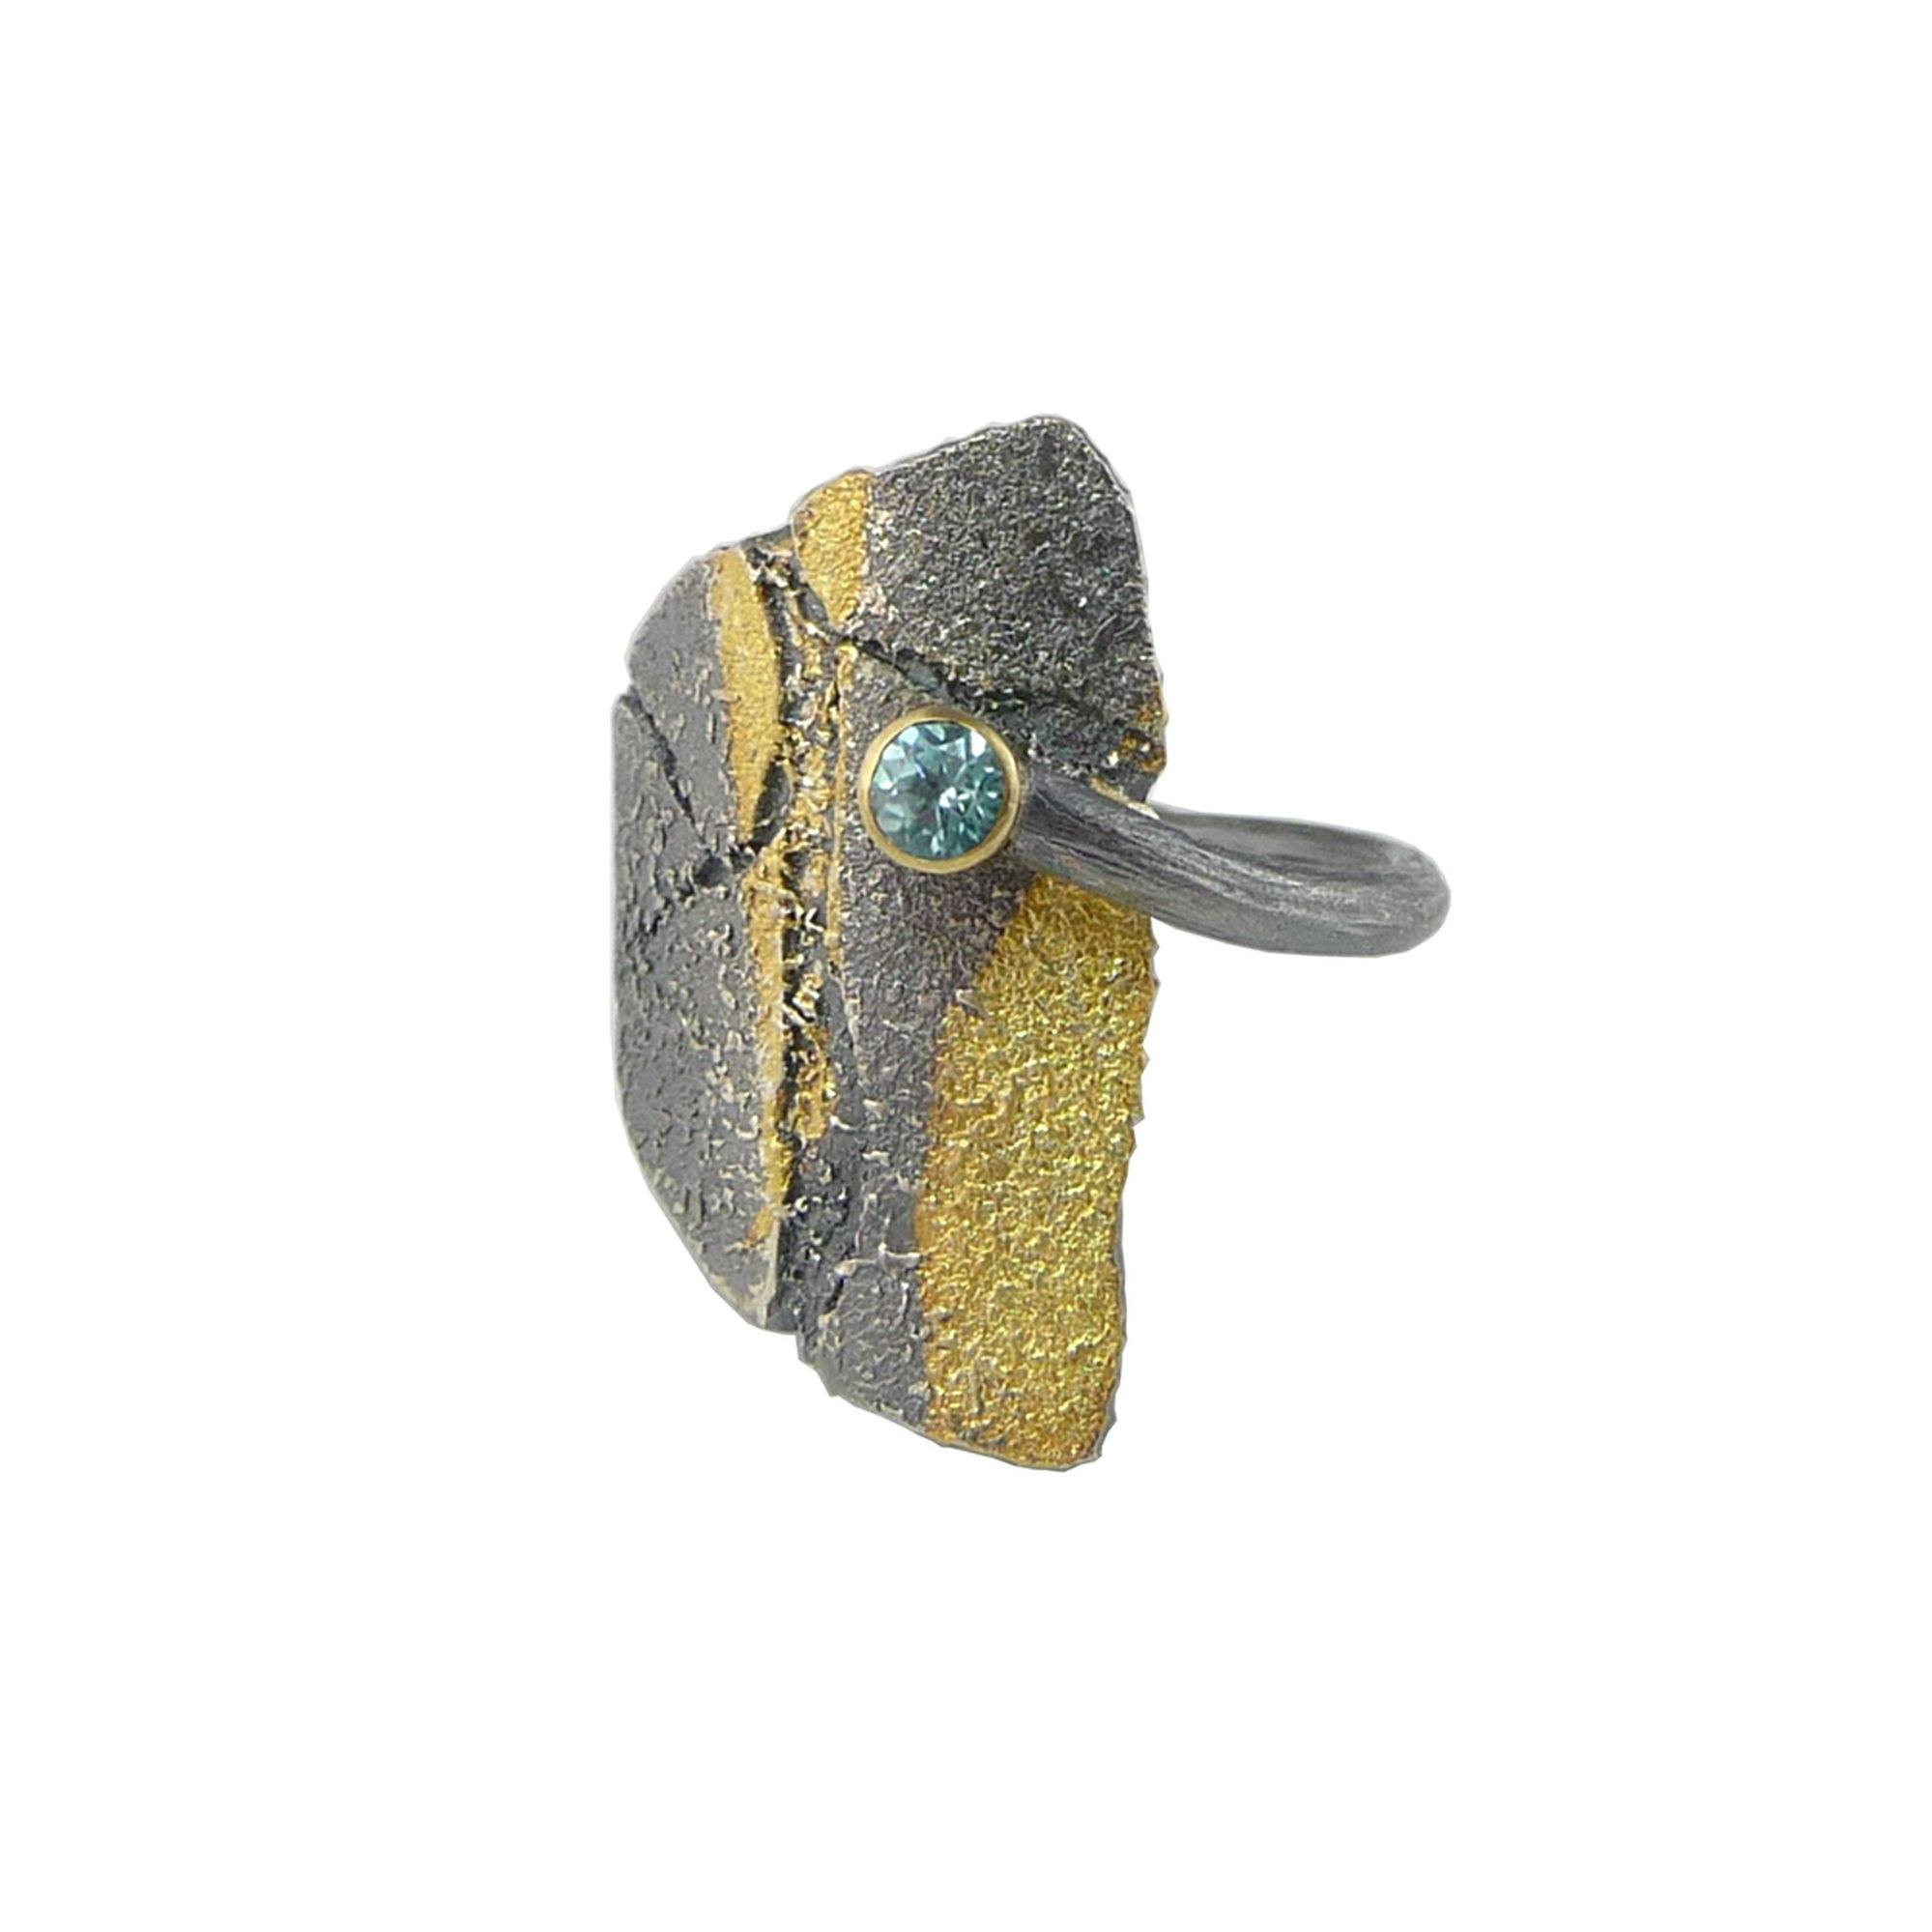 Large Bedrock Wrap Ring - Blue Zircon